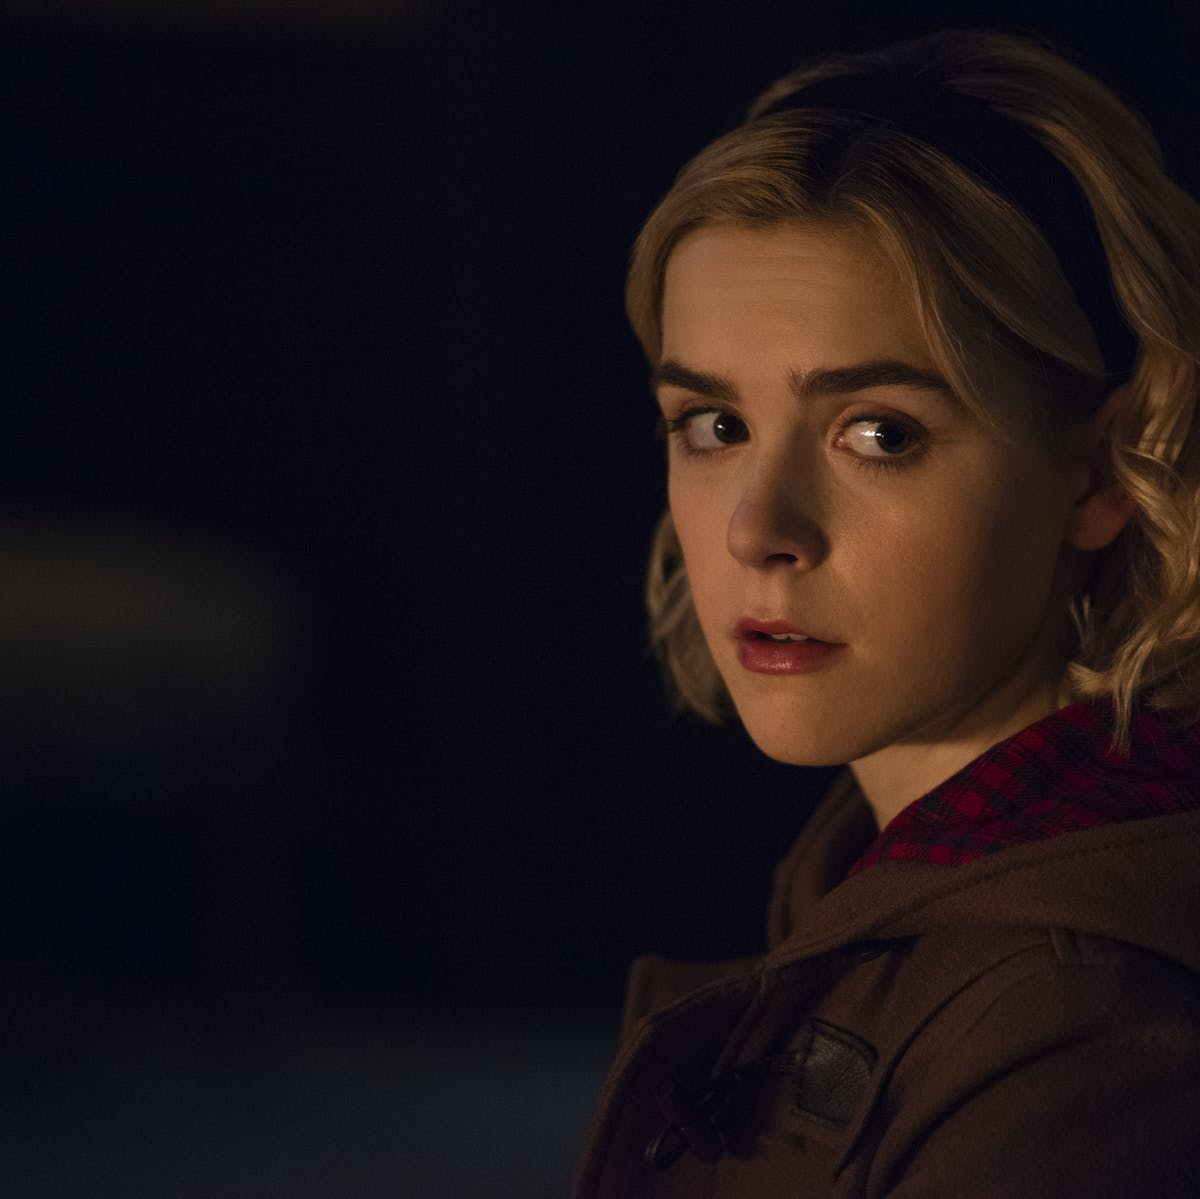 The 5 scariest 'Chilling Adventures of Sabrina' episodes for Halloween